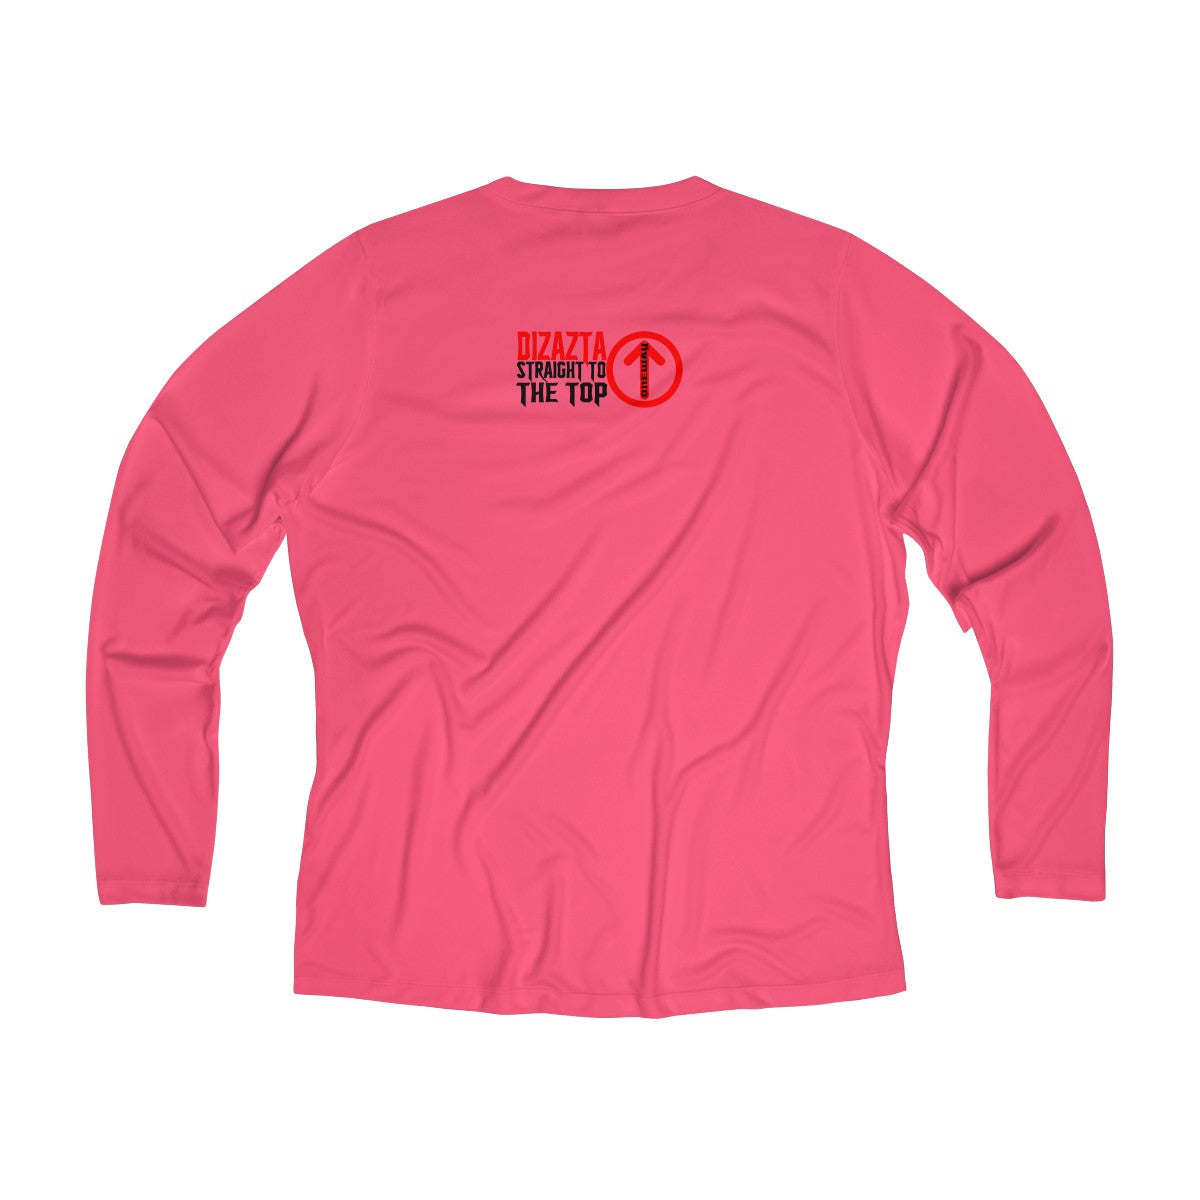 DAM-0466-(PRI) Women's Long Sleeve Performance V-neck Tee